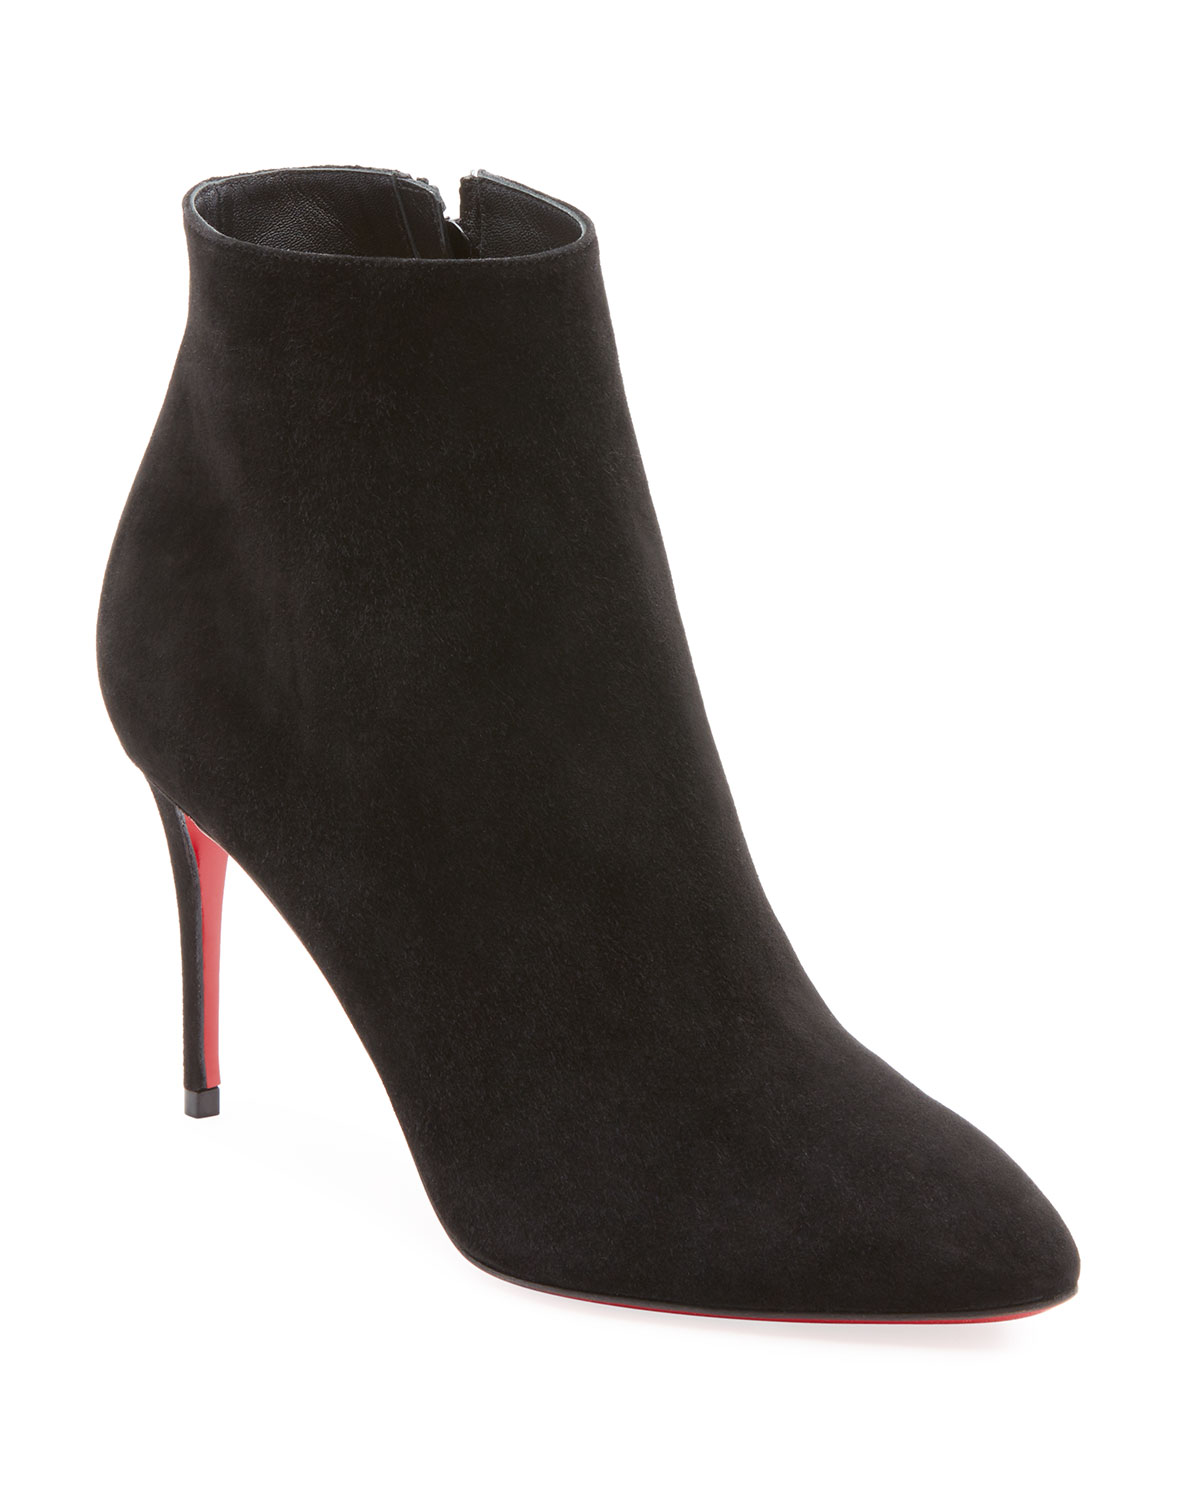 CHRISTIAN LOUBOUTIN ELOISE SUEDE RED SOLE BOOTIE